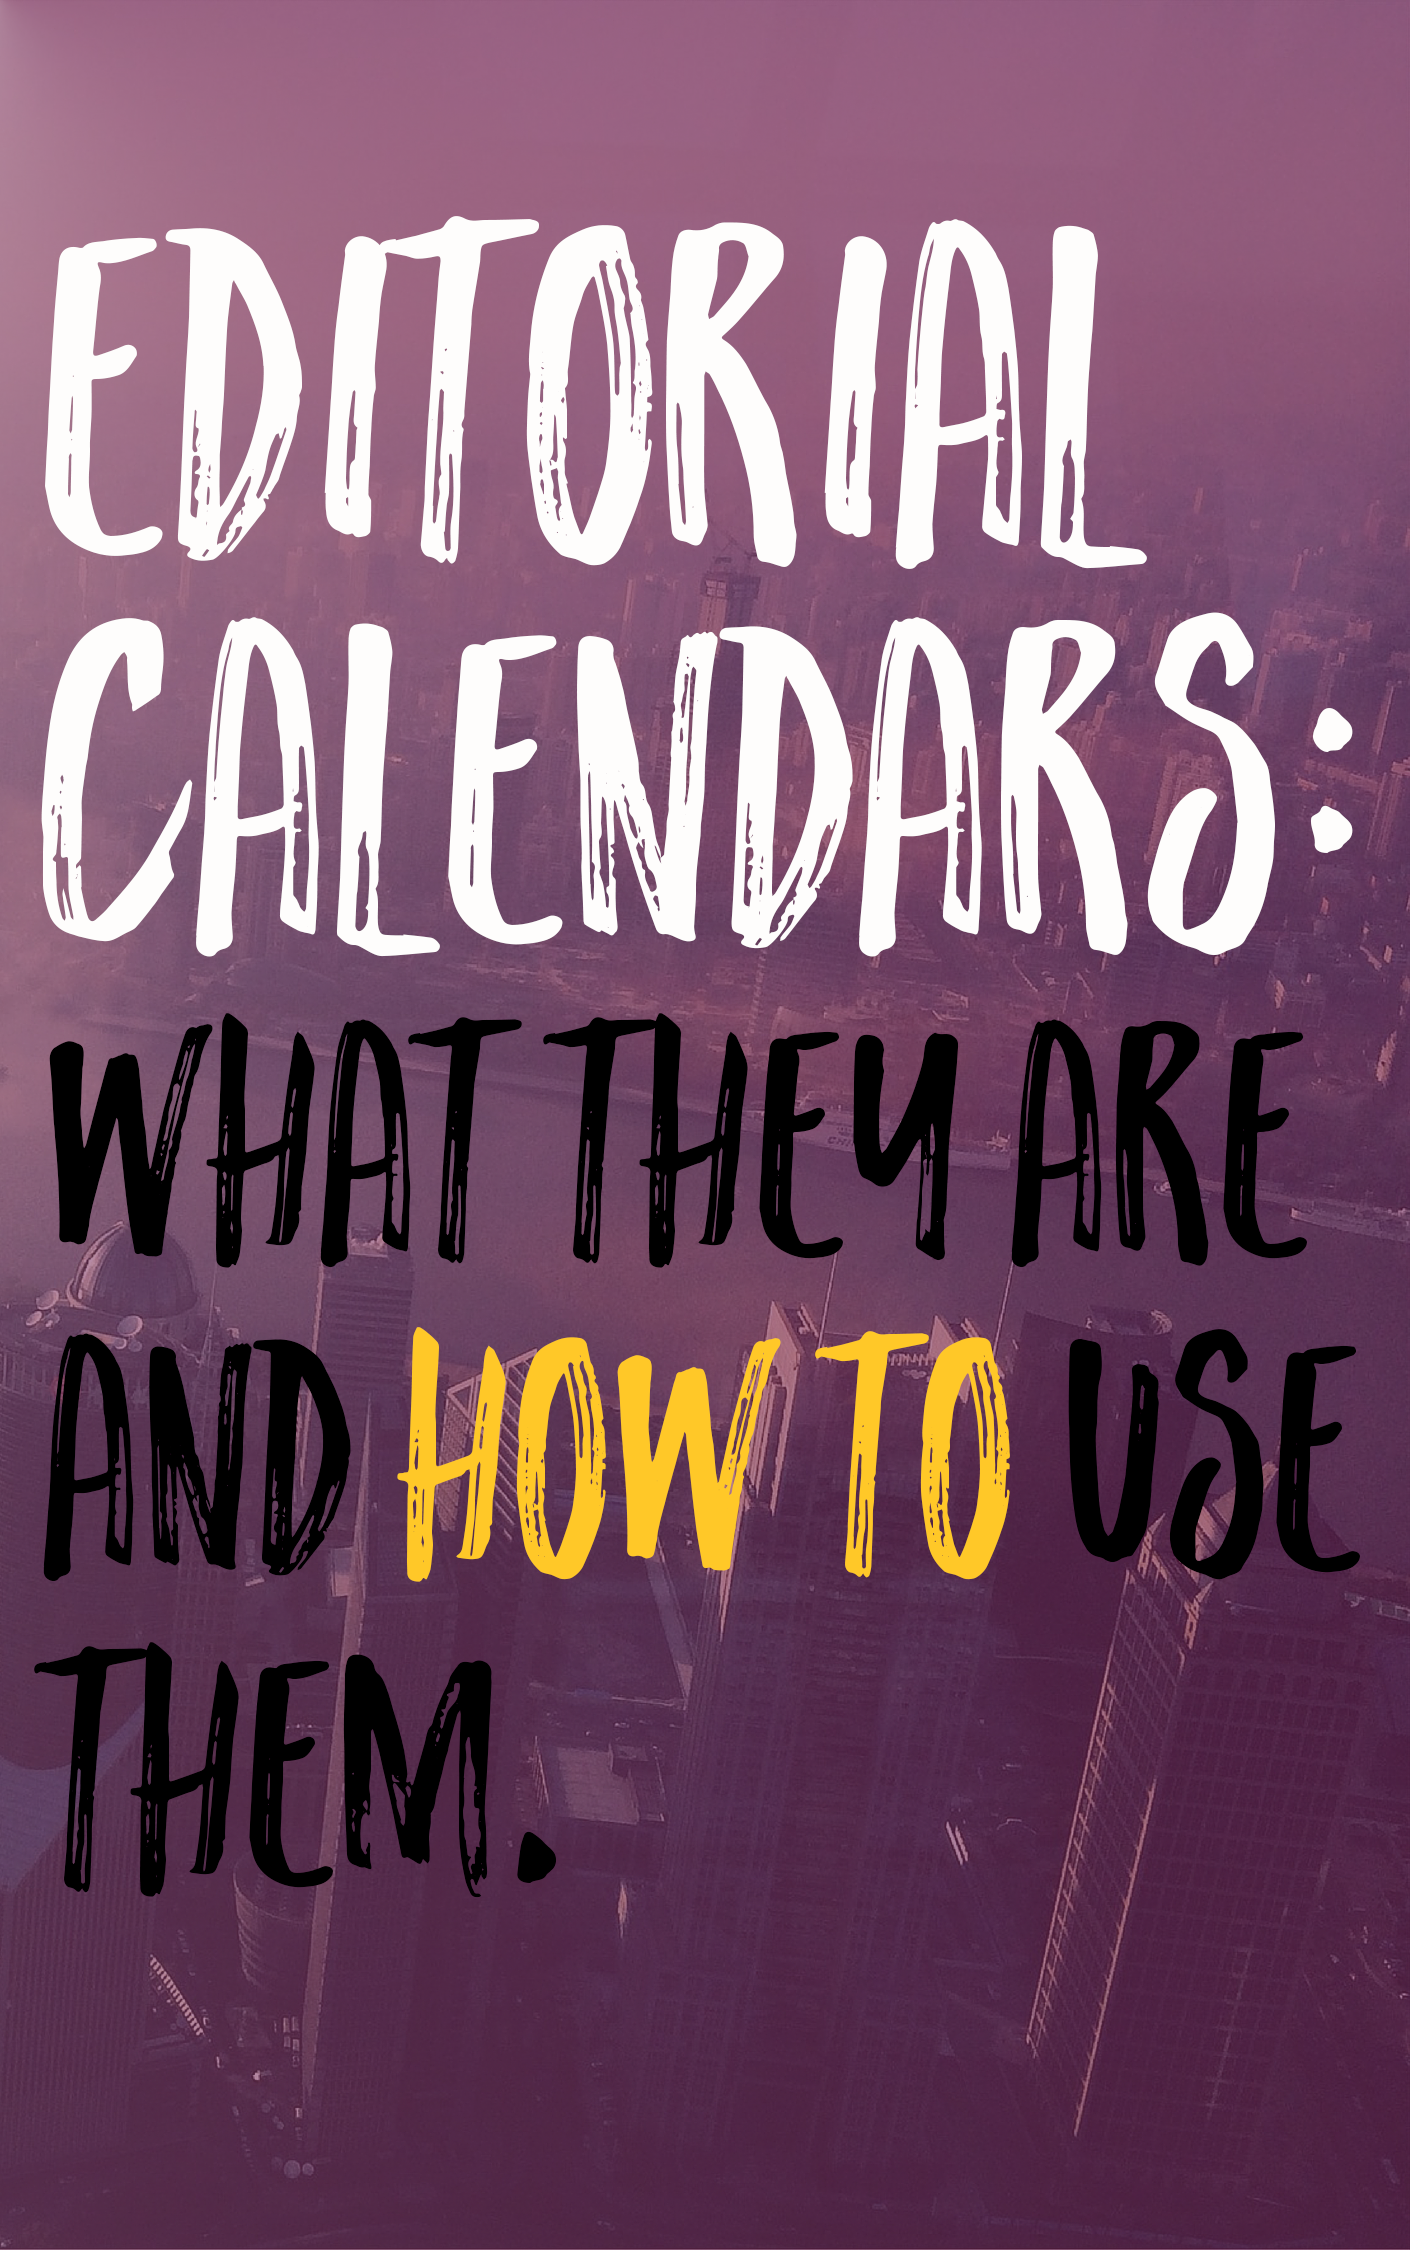 An editorial calendar is imperative to running a successful blog and keeping stress to a minimum. If you're looking to streamline your blog and make your life a whole lot easier check out how you can create an editorial calendar in Google Calendar!